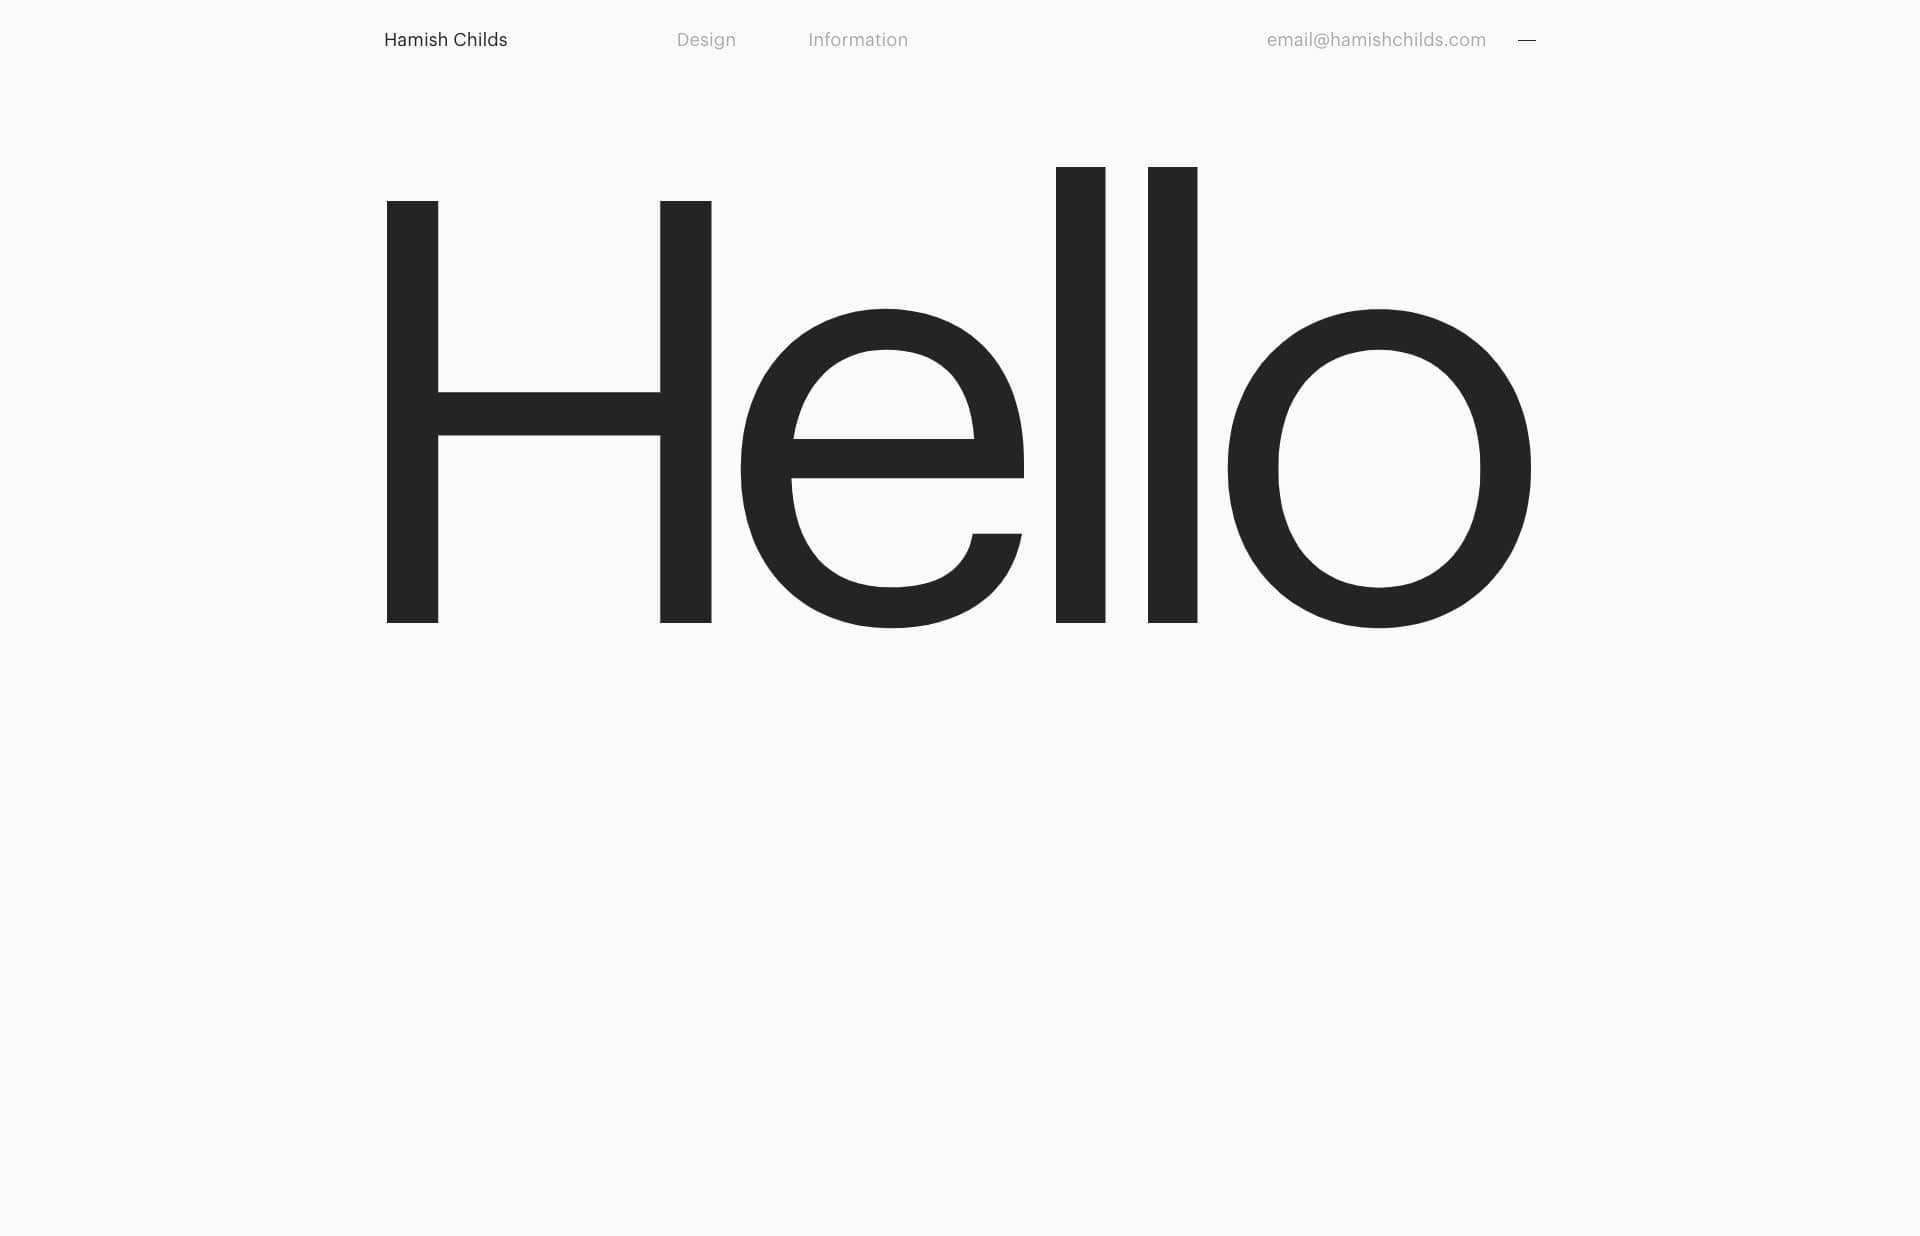 Screenshot of the website Hamish Childs, featured on The Gallery, a curated collection of minimal websites